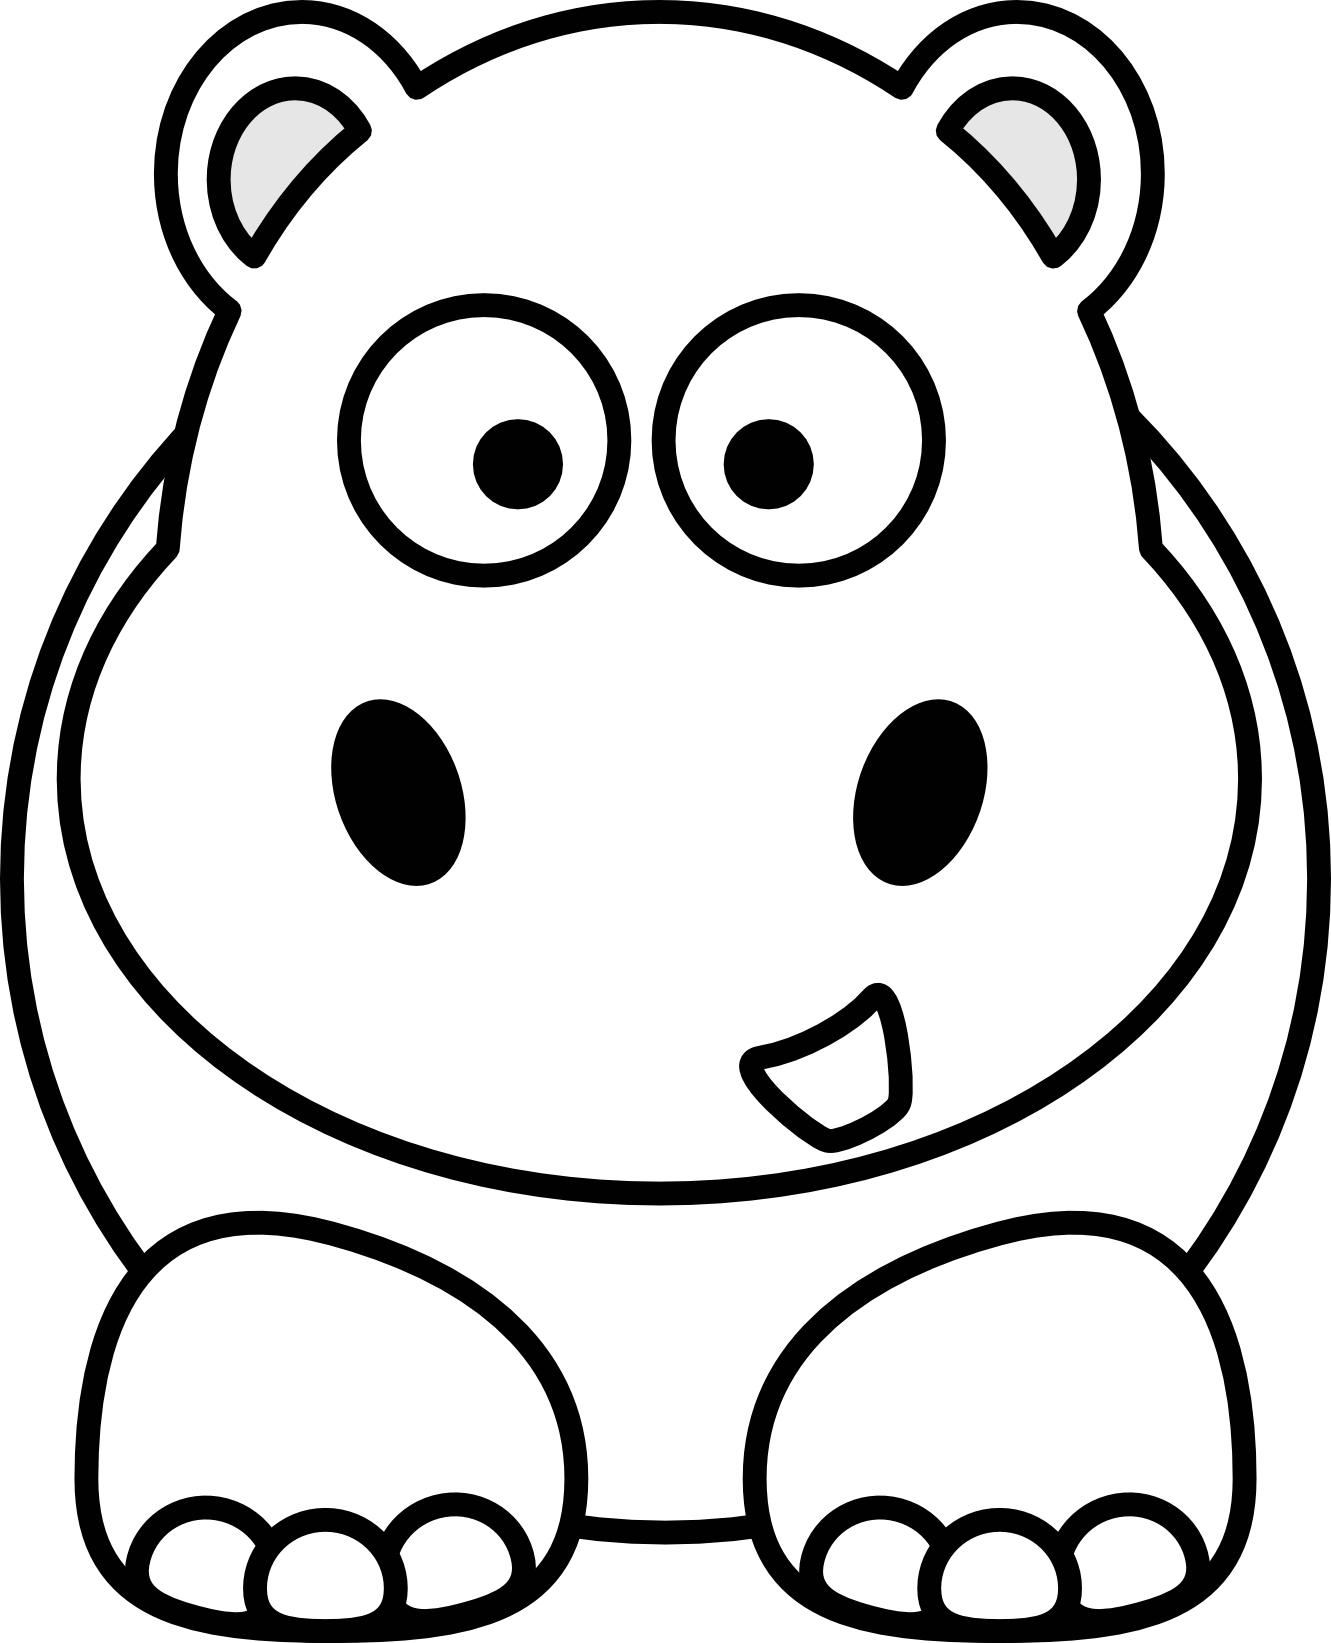 1331x1643 Clipart Animals Black And White Clipart Panda